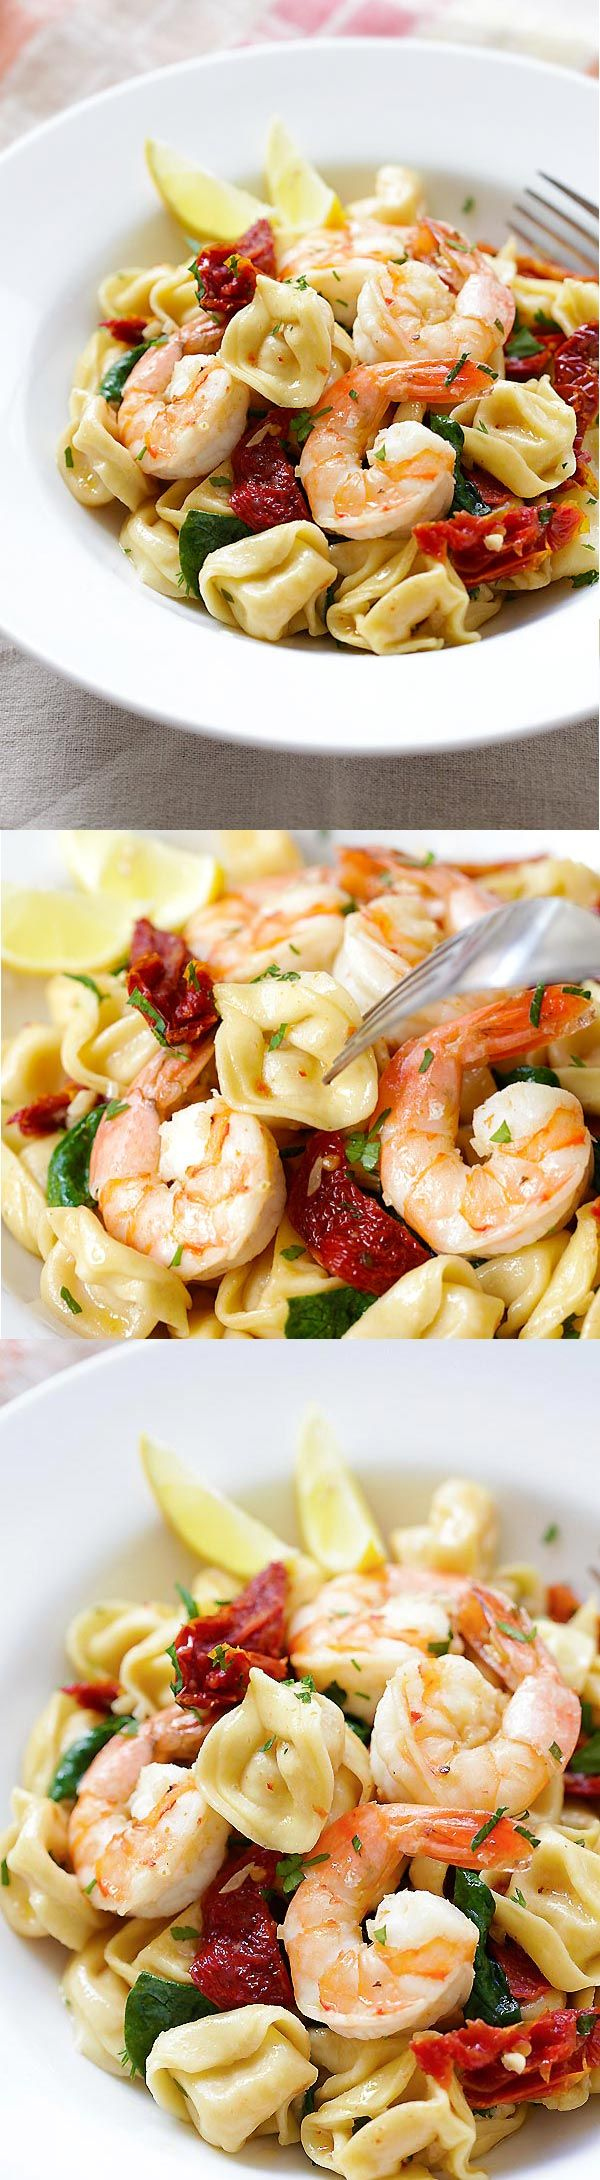 Amazing recipe for homemade Garlic Shrimp Tortellini. Budget-friendly and the taste is better than any Italian restaurant's! | rasamalaysia.com